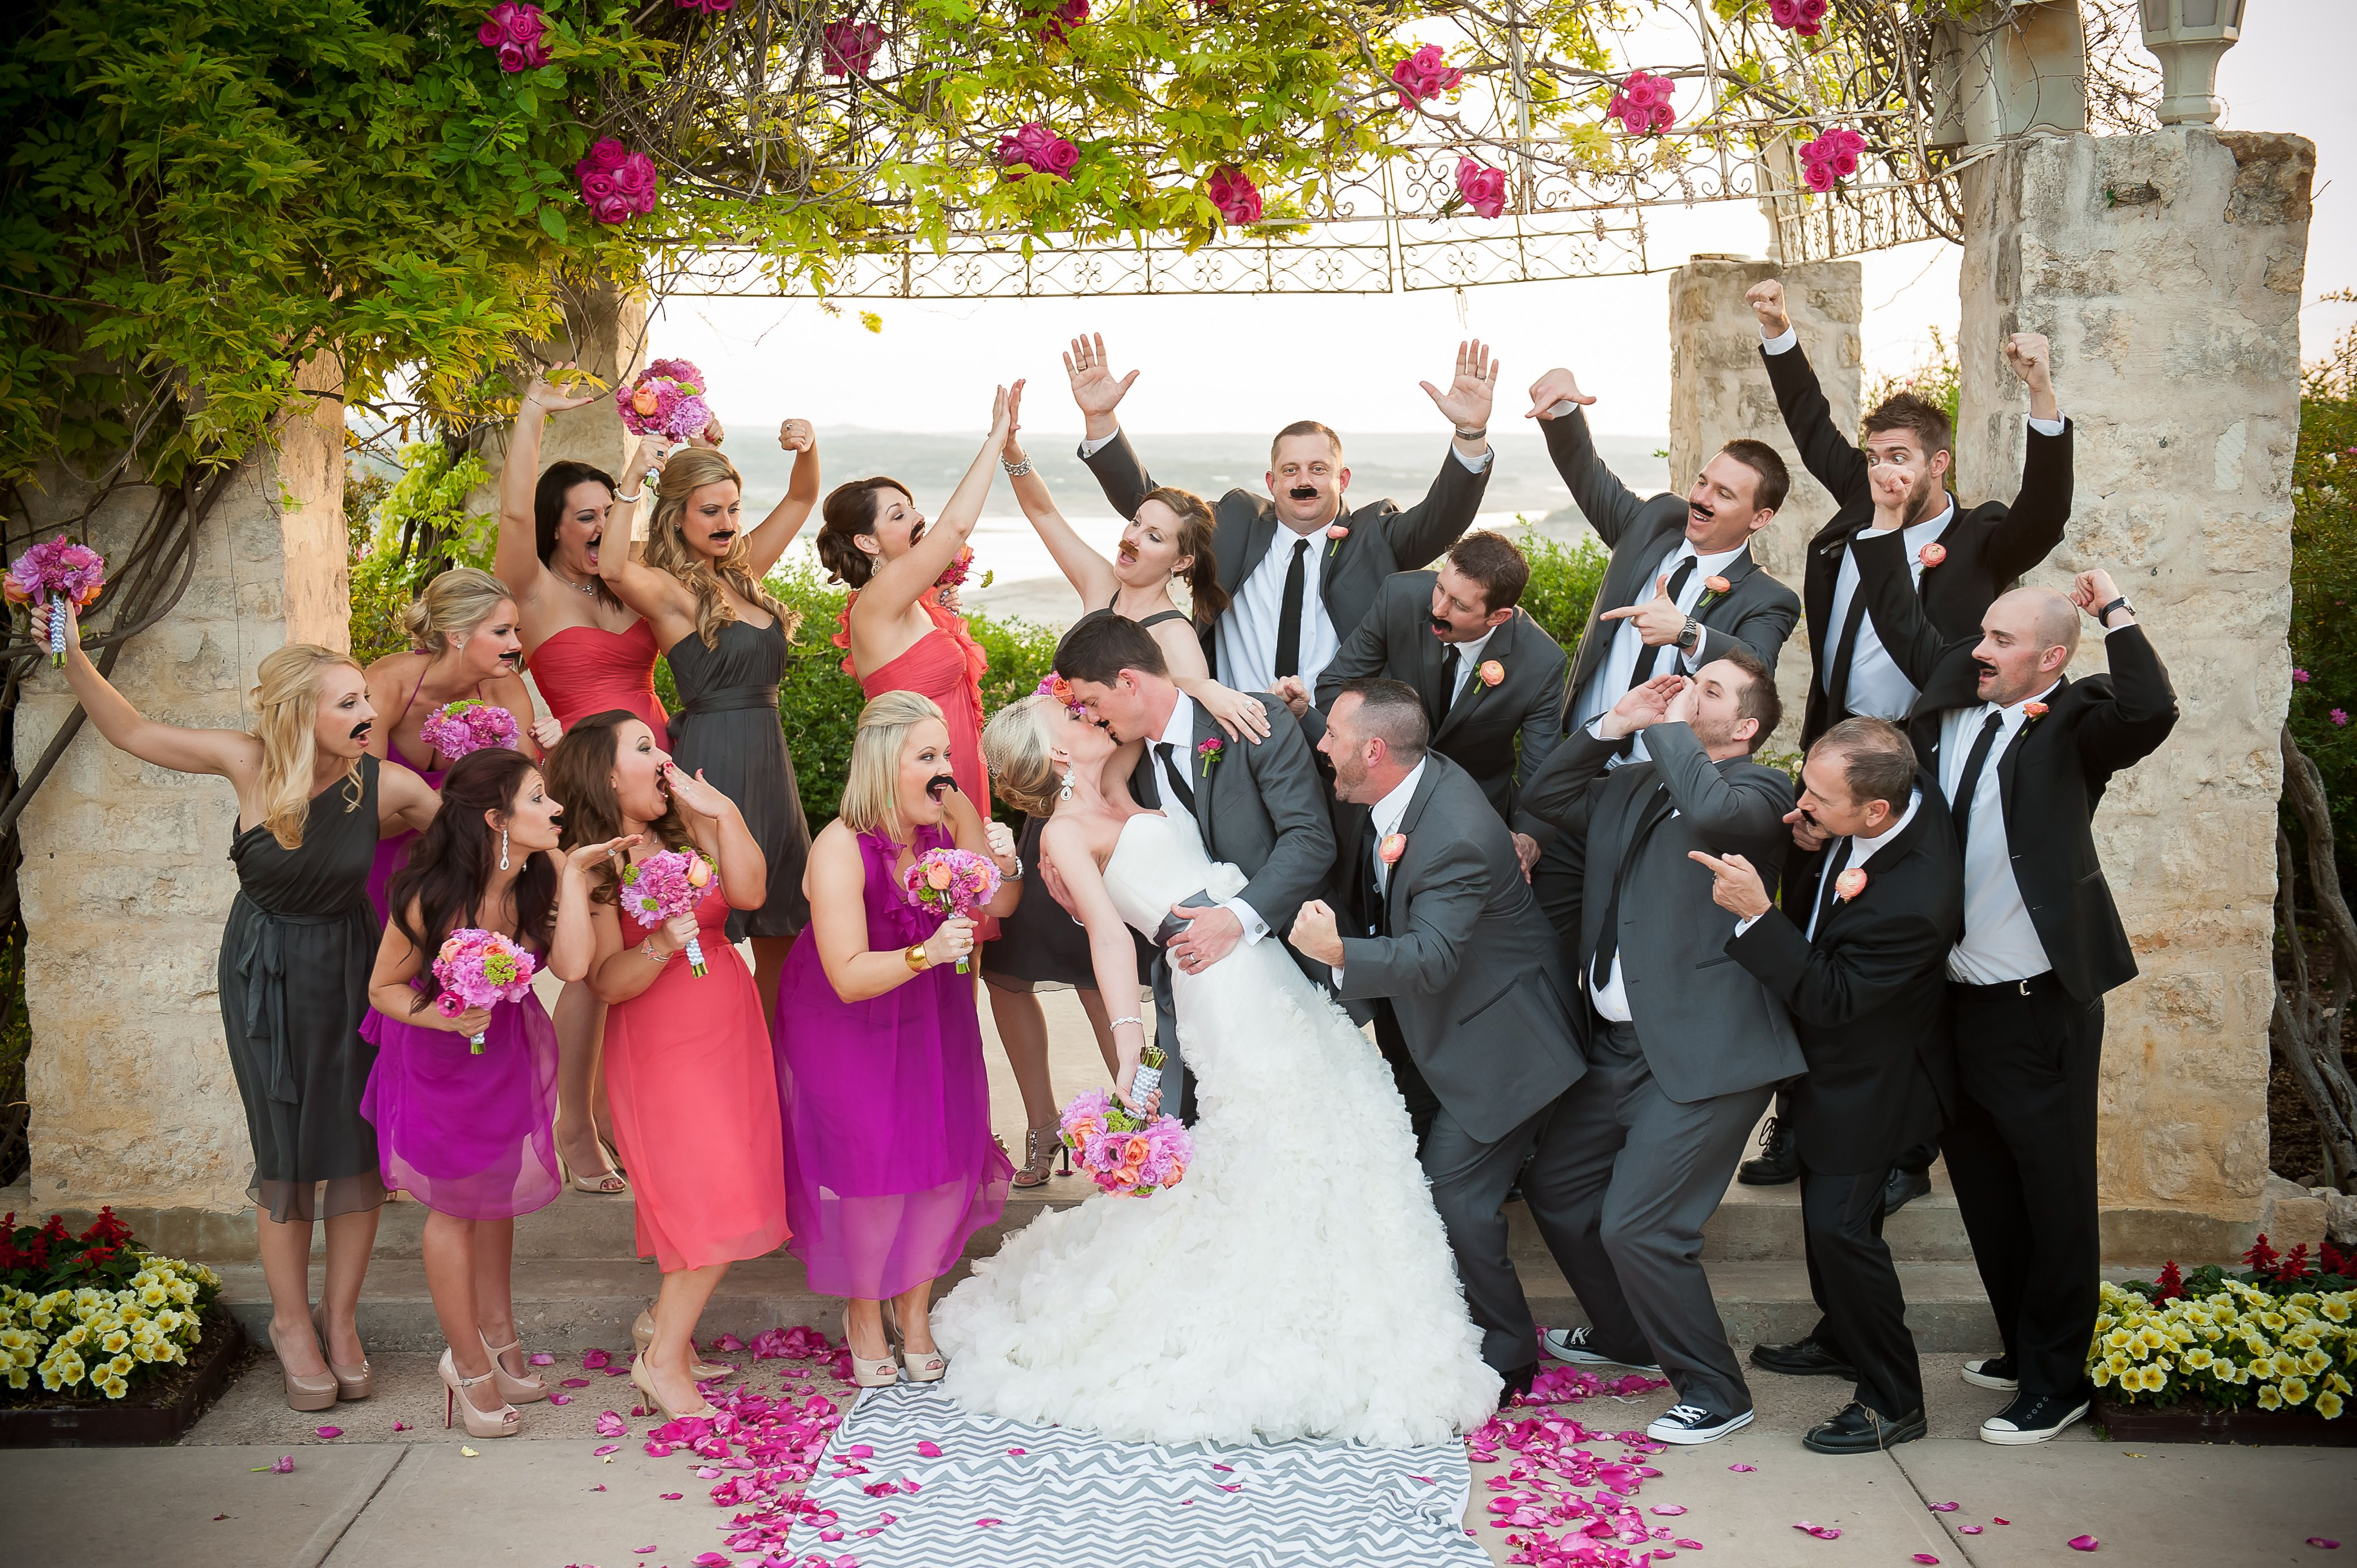 Wedding party photo mustaches grey pink and fuchsia wedding party photo mustaches grey pink and fuchsia bridesmaids dresses pink petals ombrellifo Images